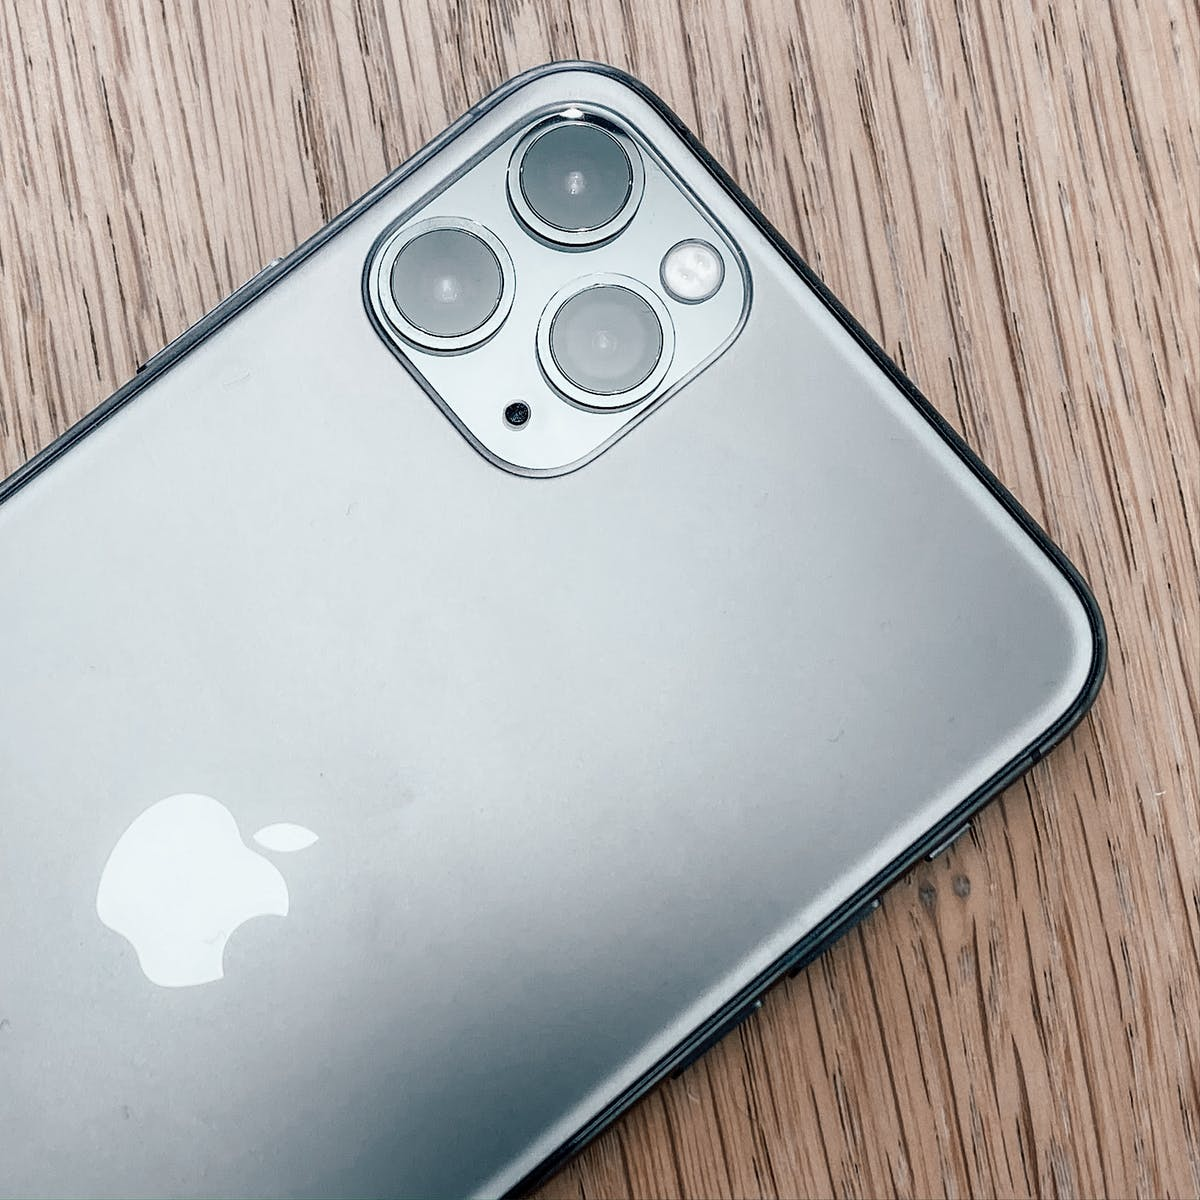 iPhone 2020: Why Apple's new screen sizes could be its best feature